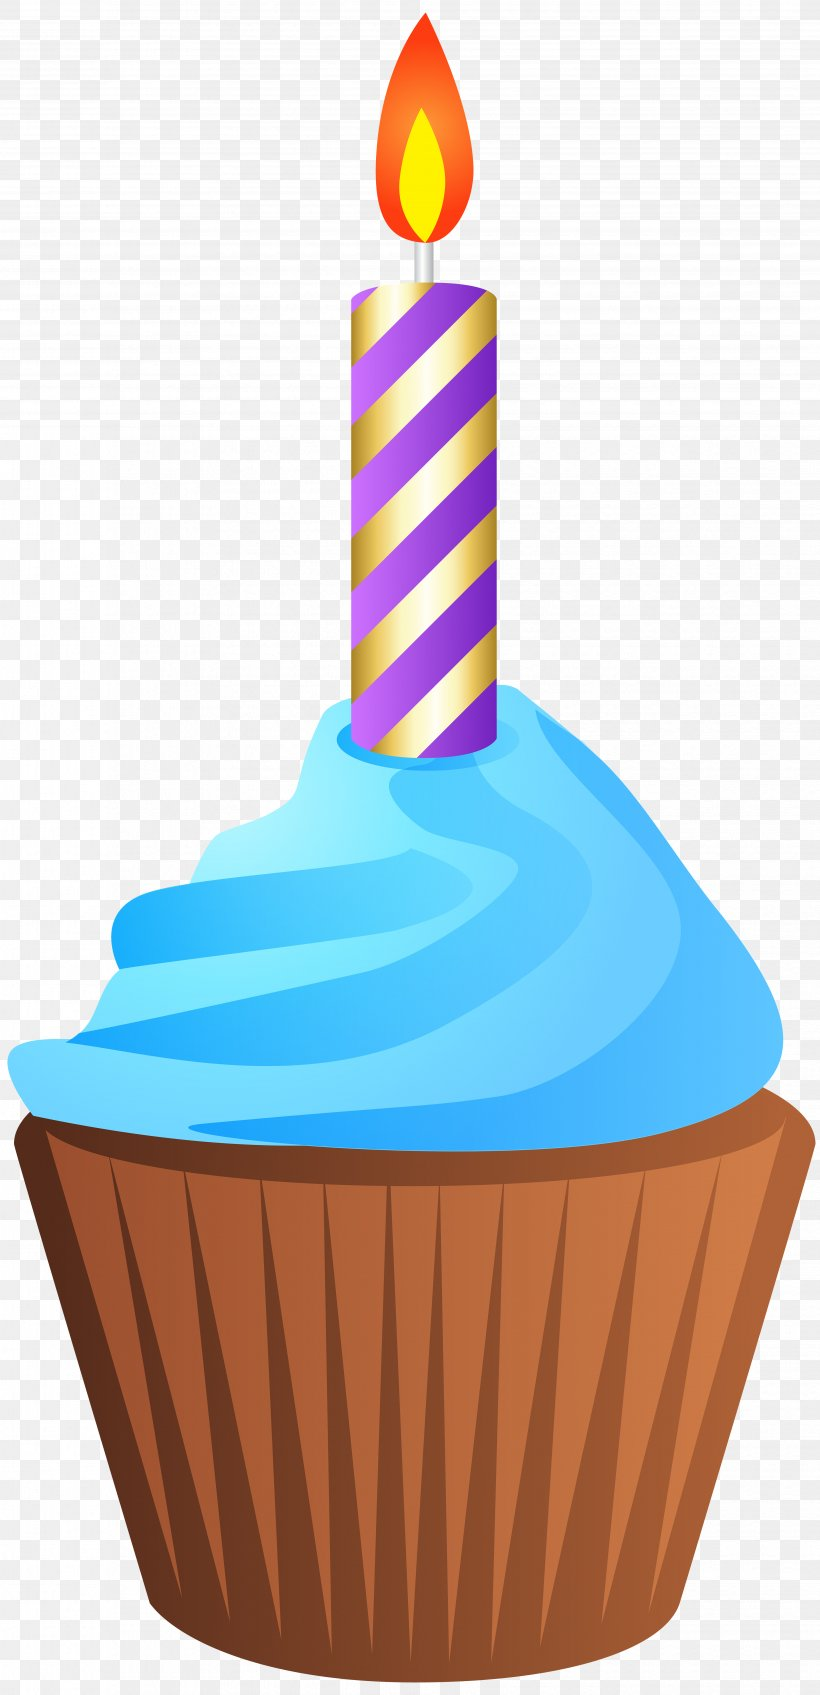 Muffin Birthday Cake Clip Art, PNG, 3869x8000px, Birthday Cake, Baking Cup, Birthday, Cake, Cake Stand Download Free